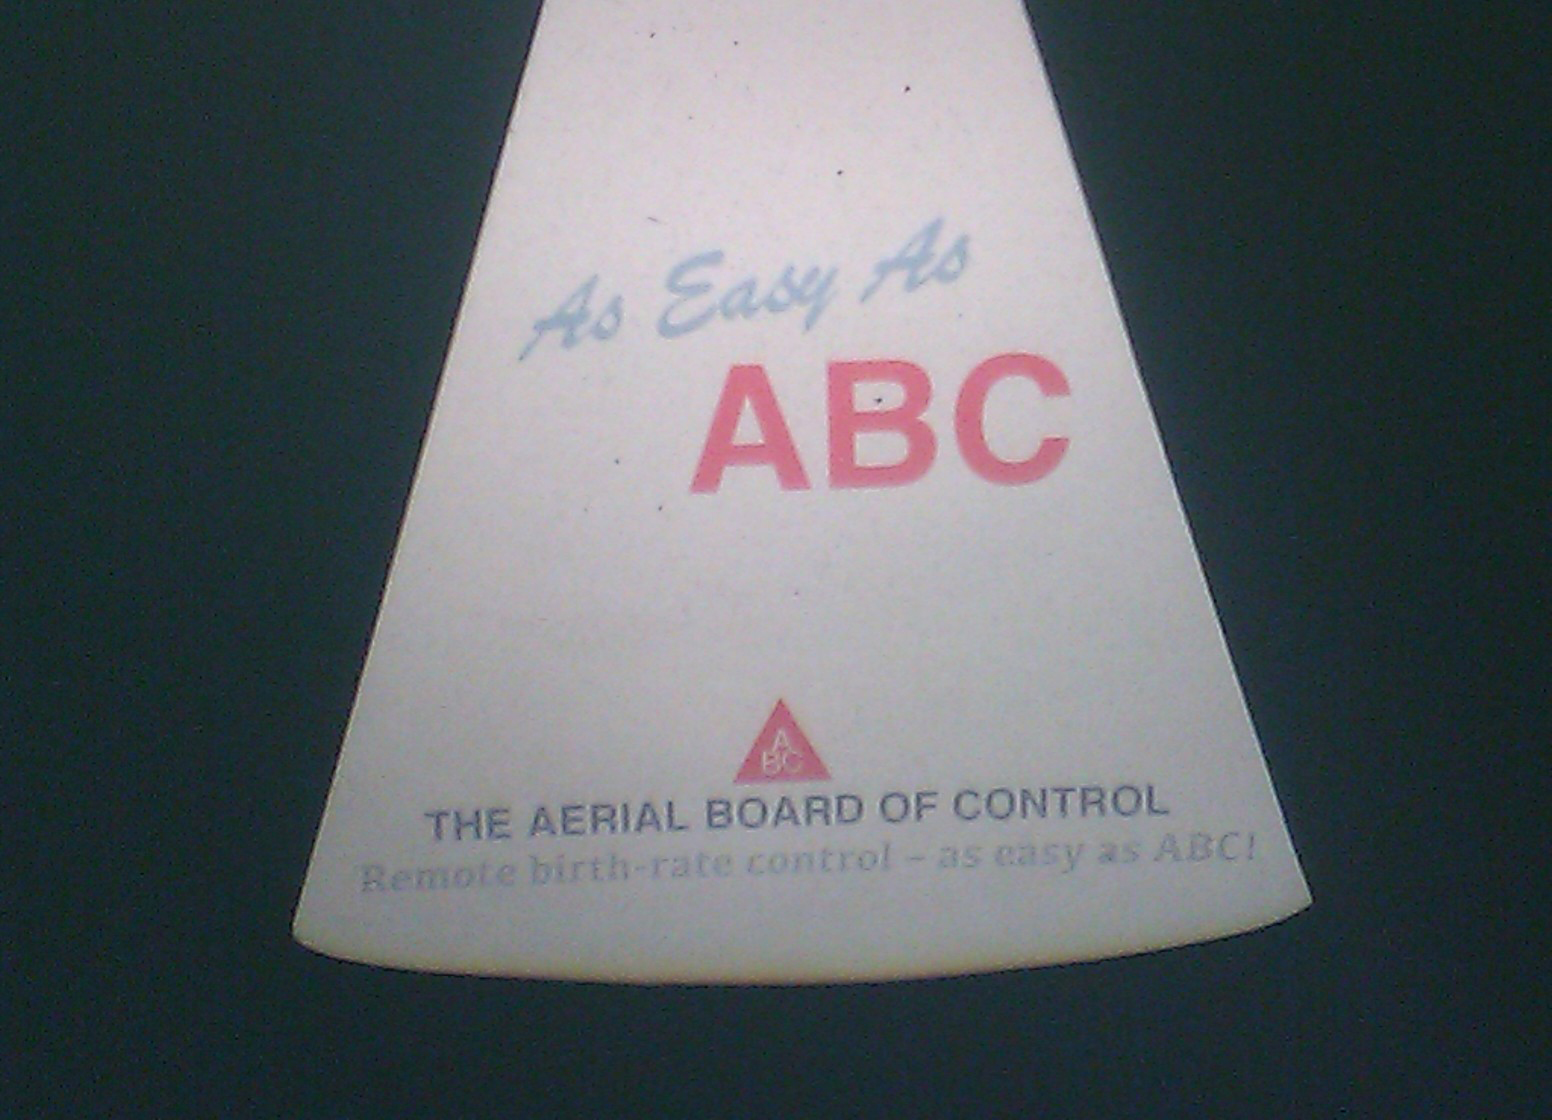 As Easy As ABC